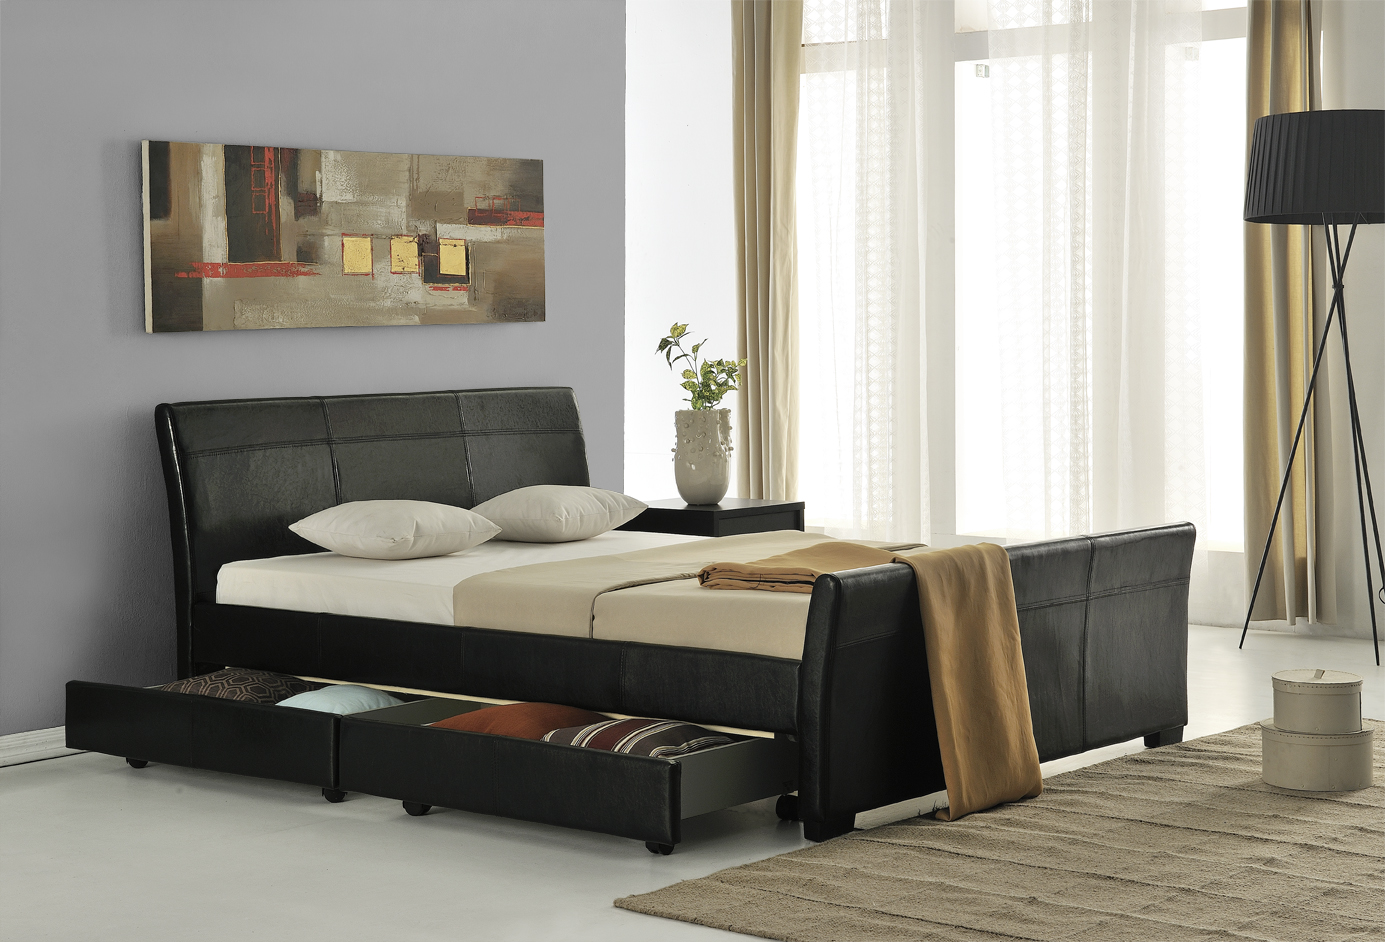 lederbett mit schubladen polsterbett bett 180x200 schwarz doppelbett pu leder ebay. Black Bedroom Furniture Sets. Home Design Ideas